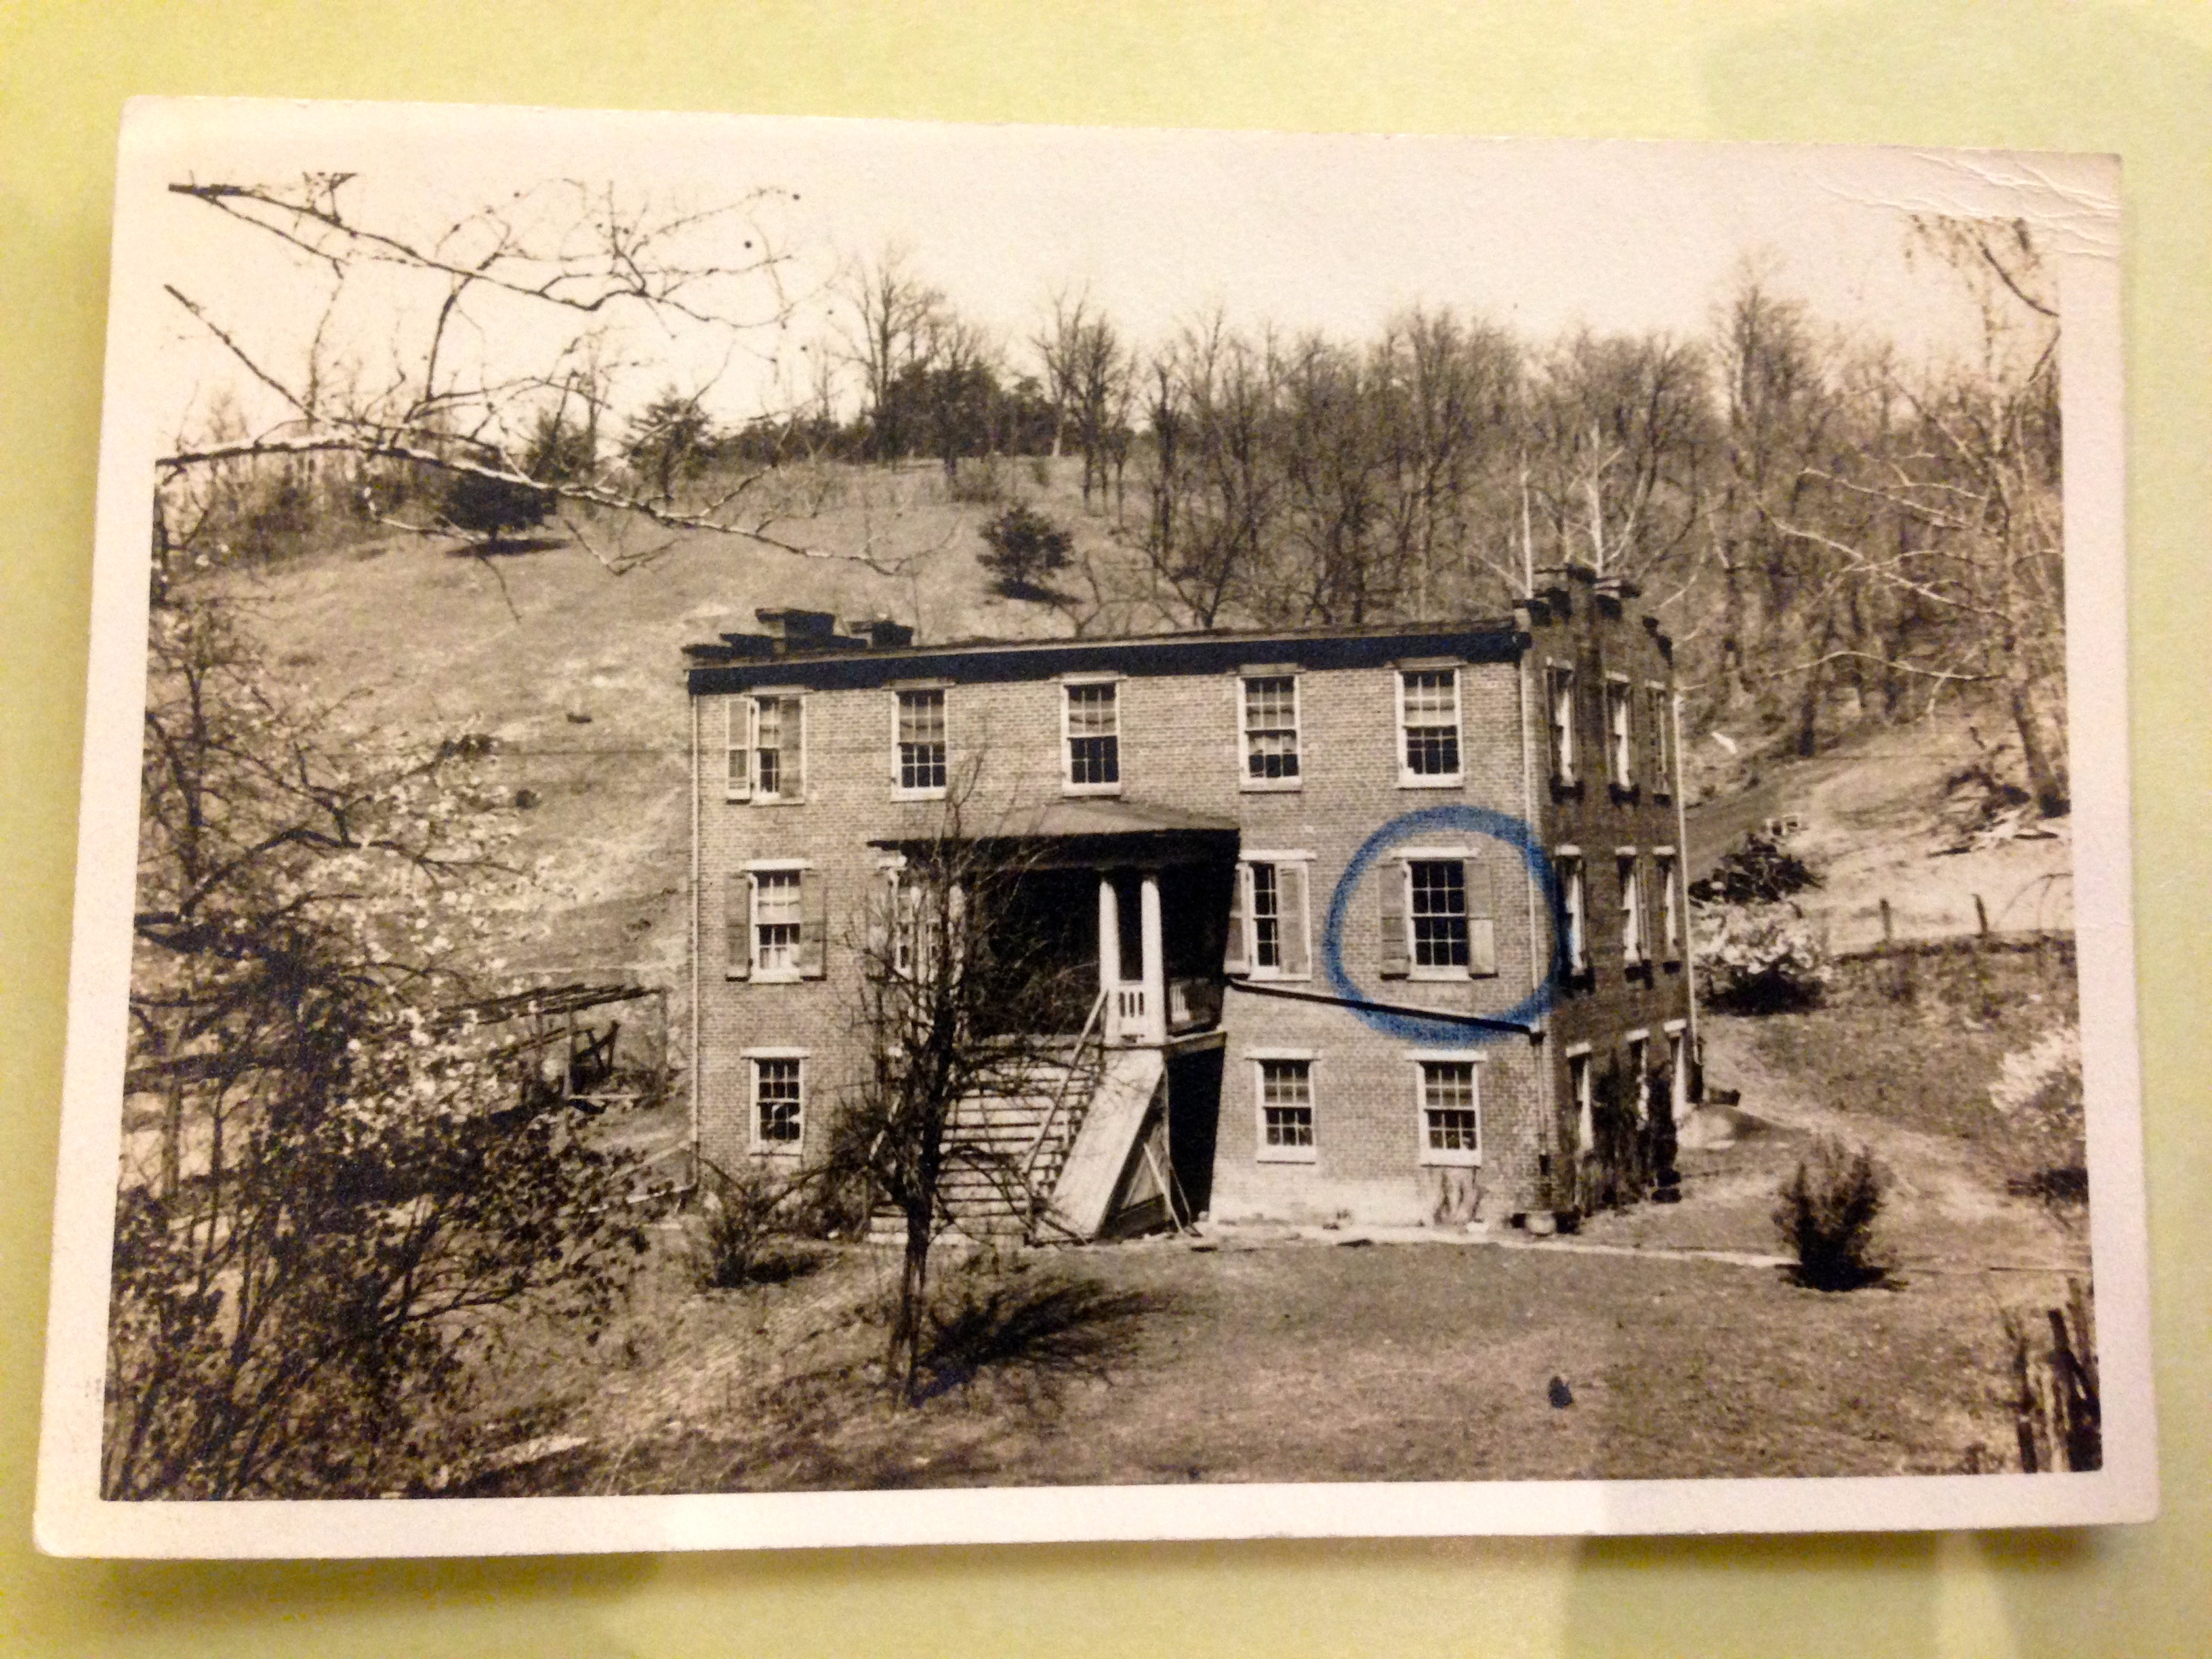 Cather's childhood home in Willow Shade, VA, n.d. (MSS 6494. Photograph by Emily Caldwell.)